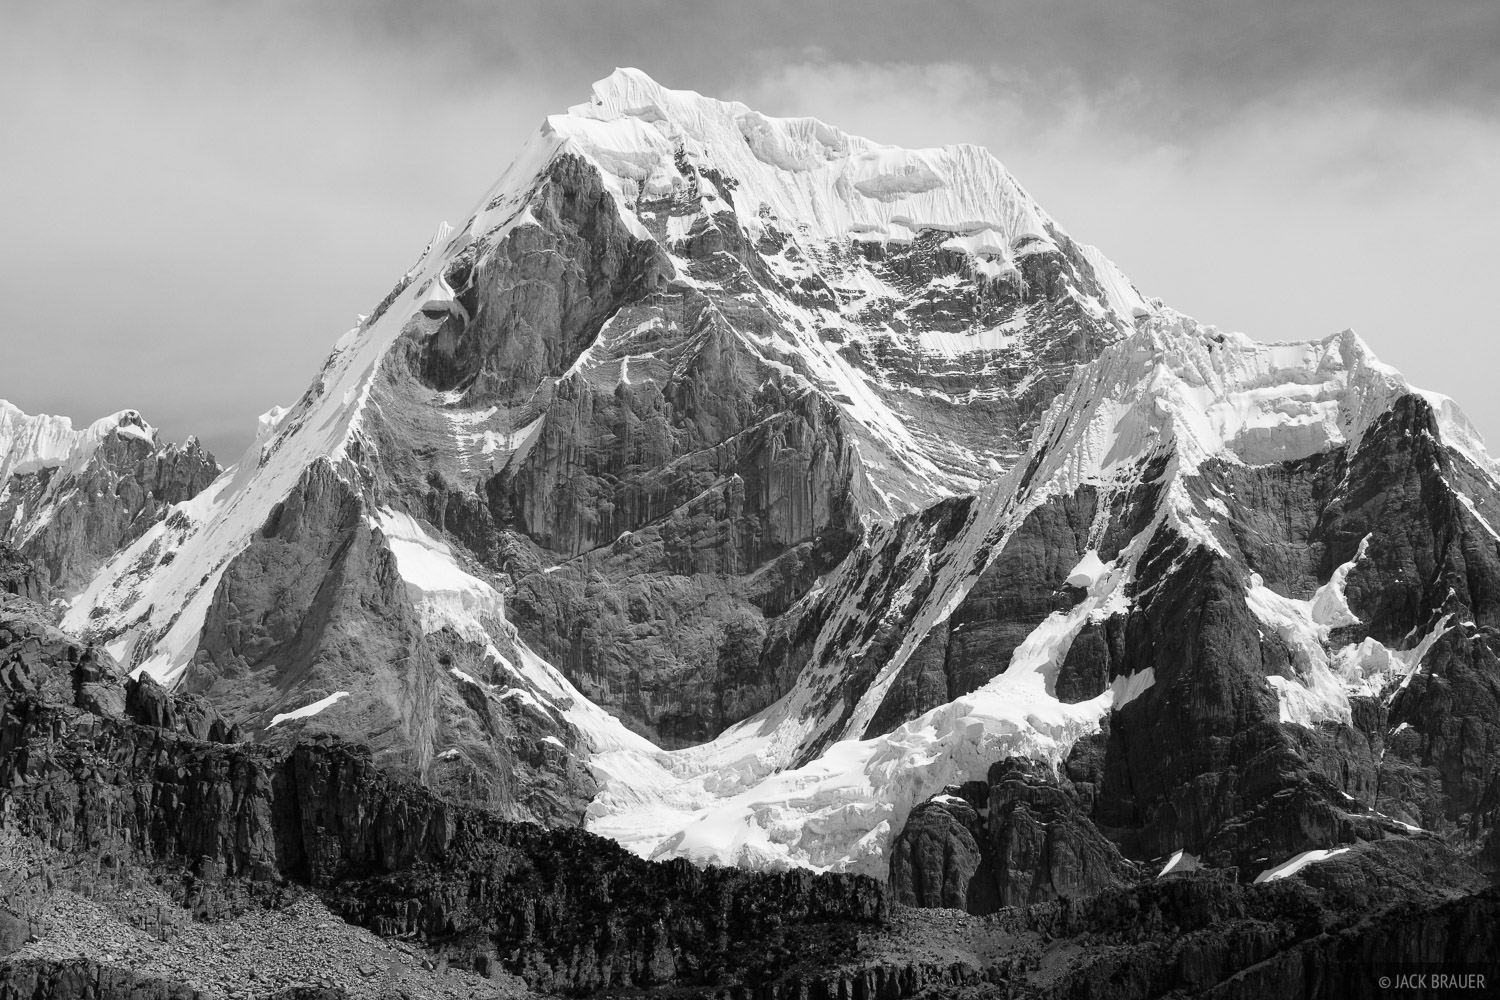 The western face of Siula (6344m, 20,814 ft.).